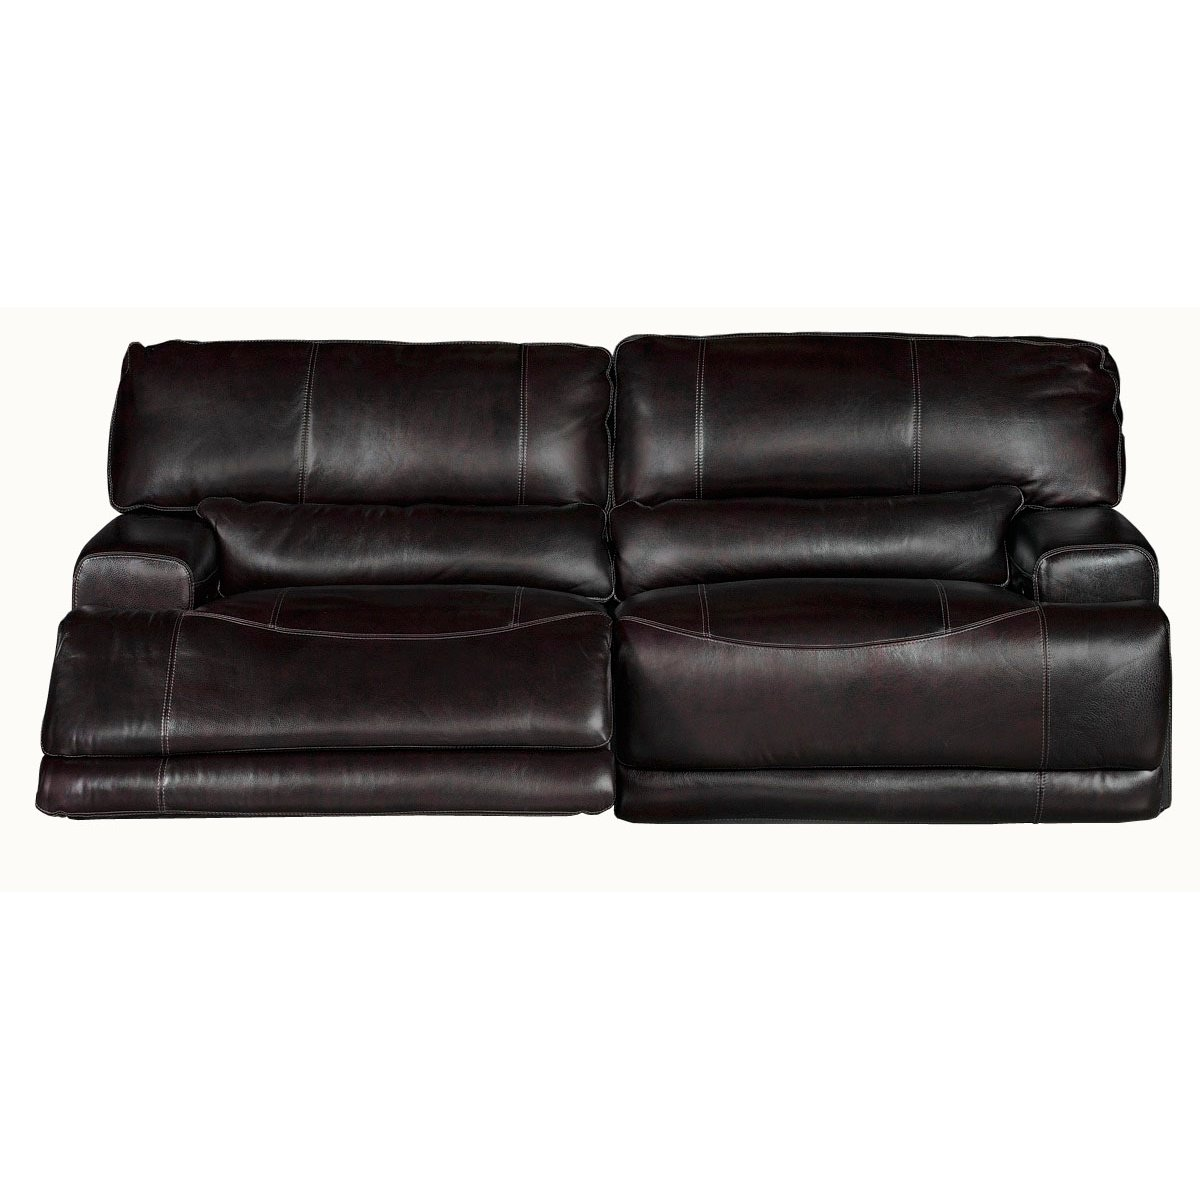 ... Blackberry Leather Match Power Reclining Sofa   Stampede